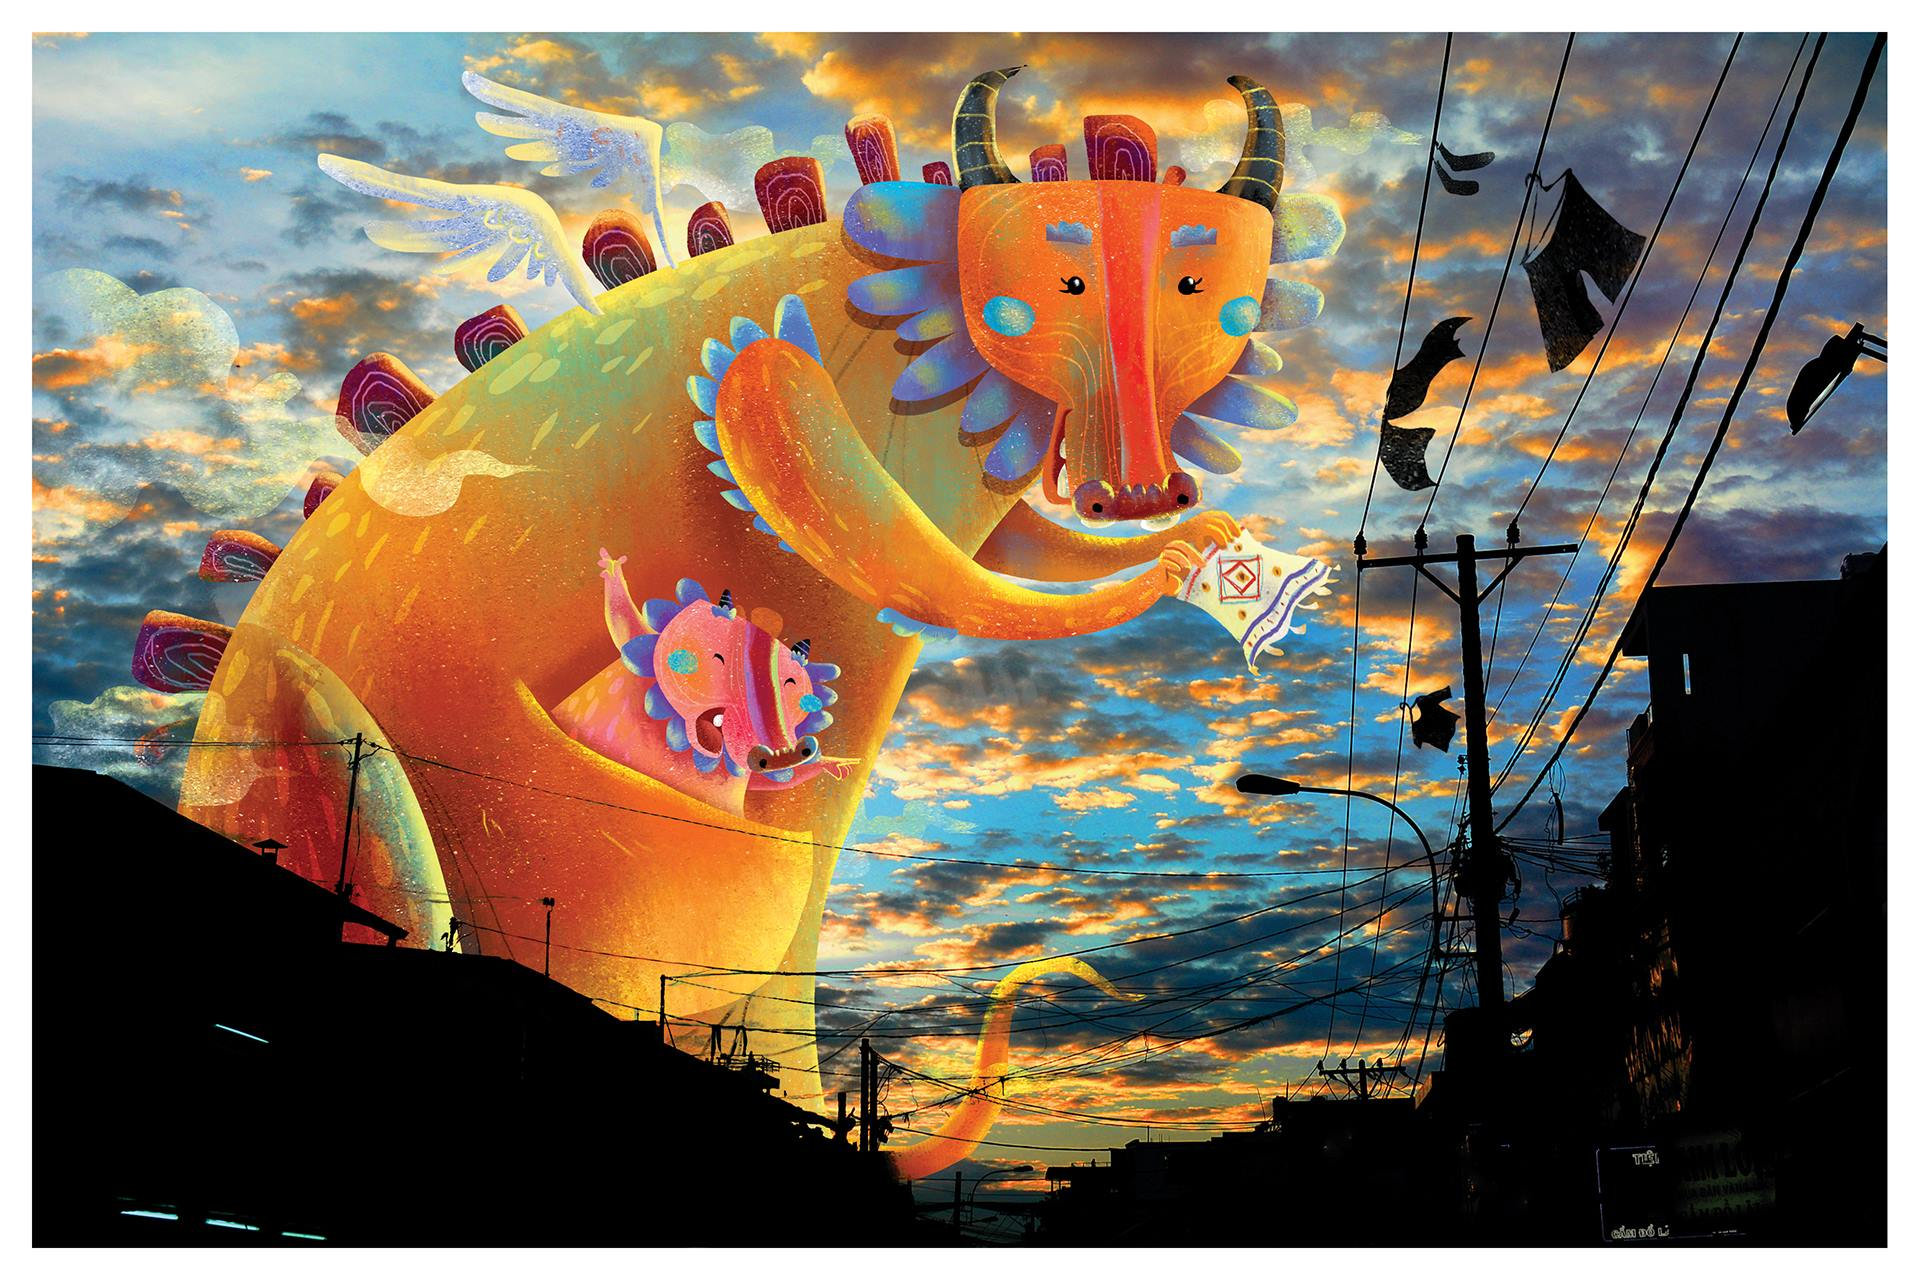 Vietnamese artists win Southeast Asian illustration award